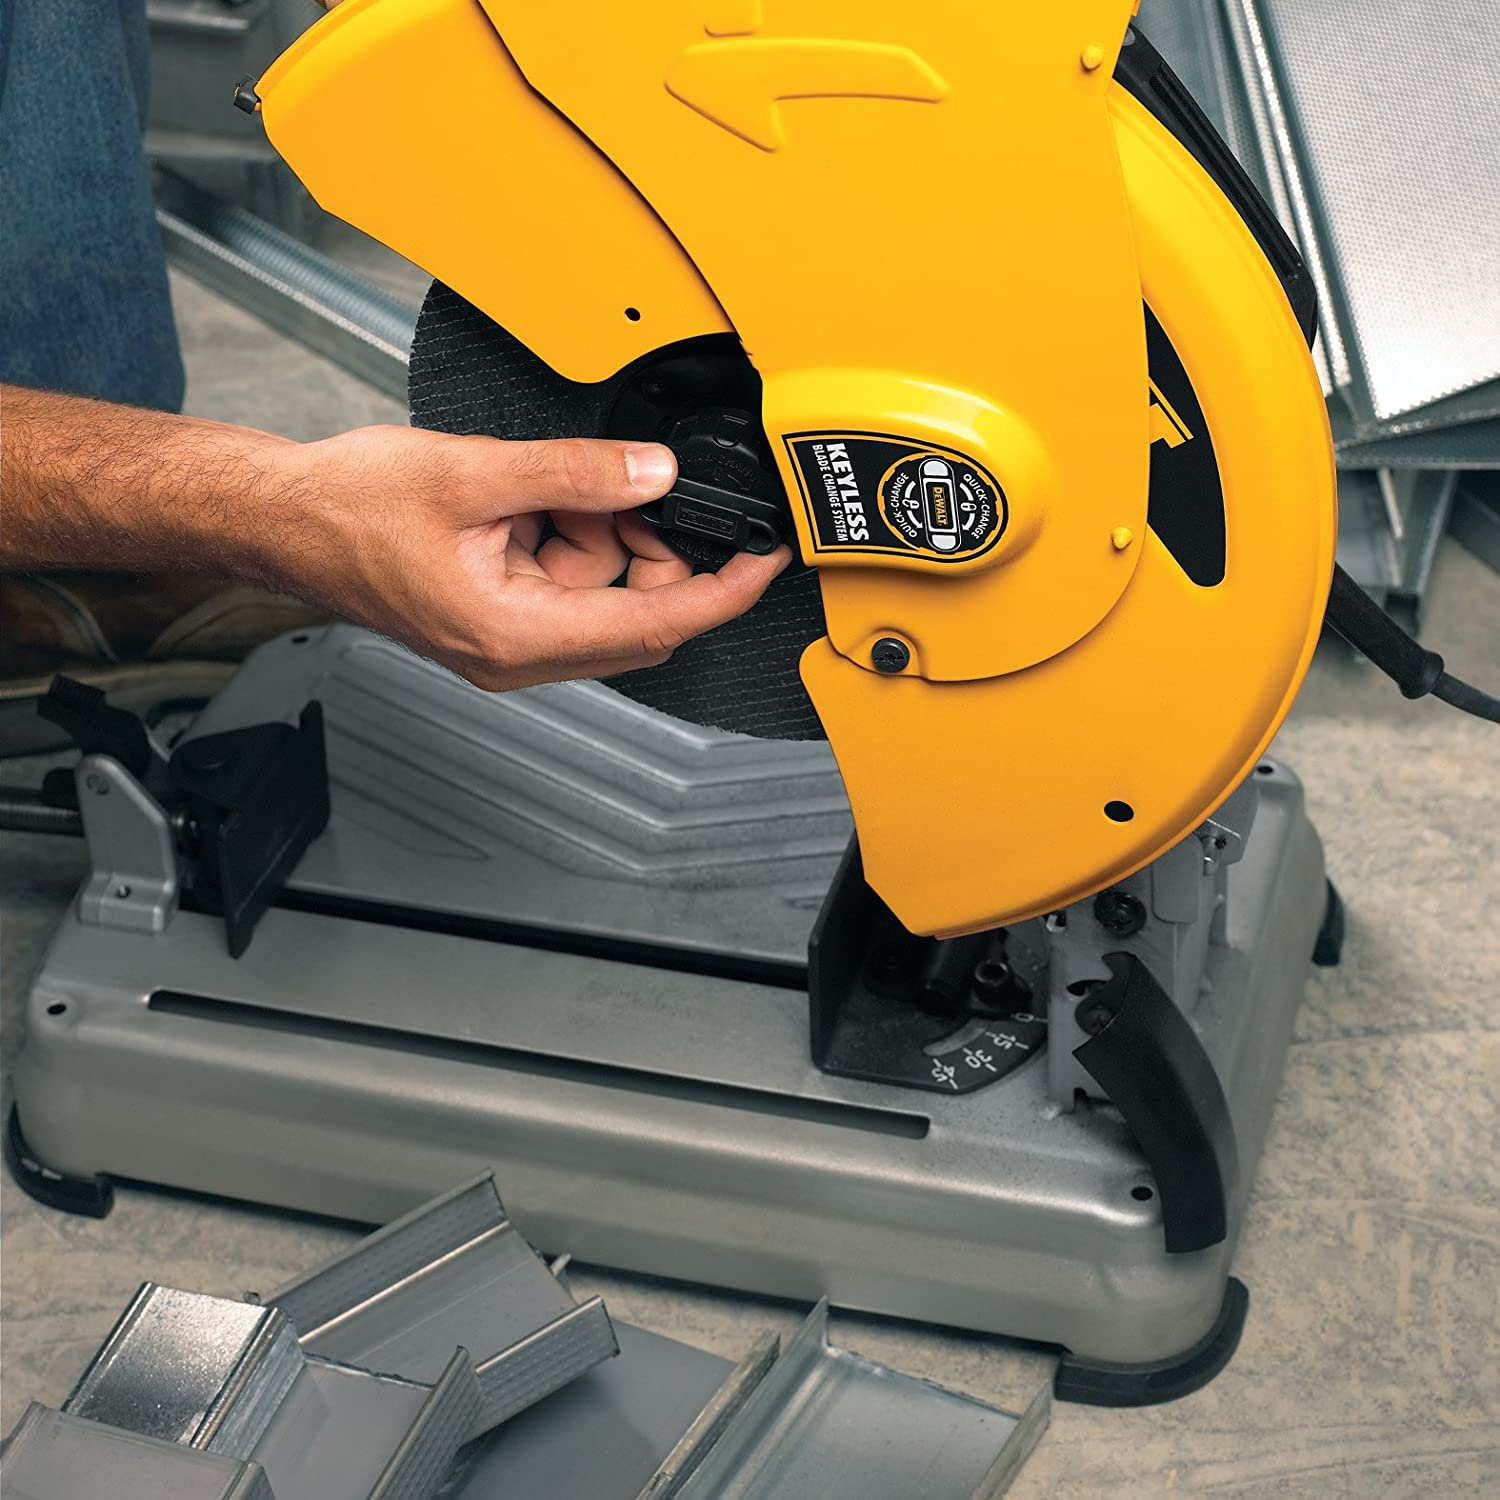 Dewalt d28715 14 inch quick change chop saw cut off saw amazon keyboard keysfo Image collections